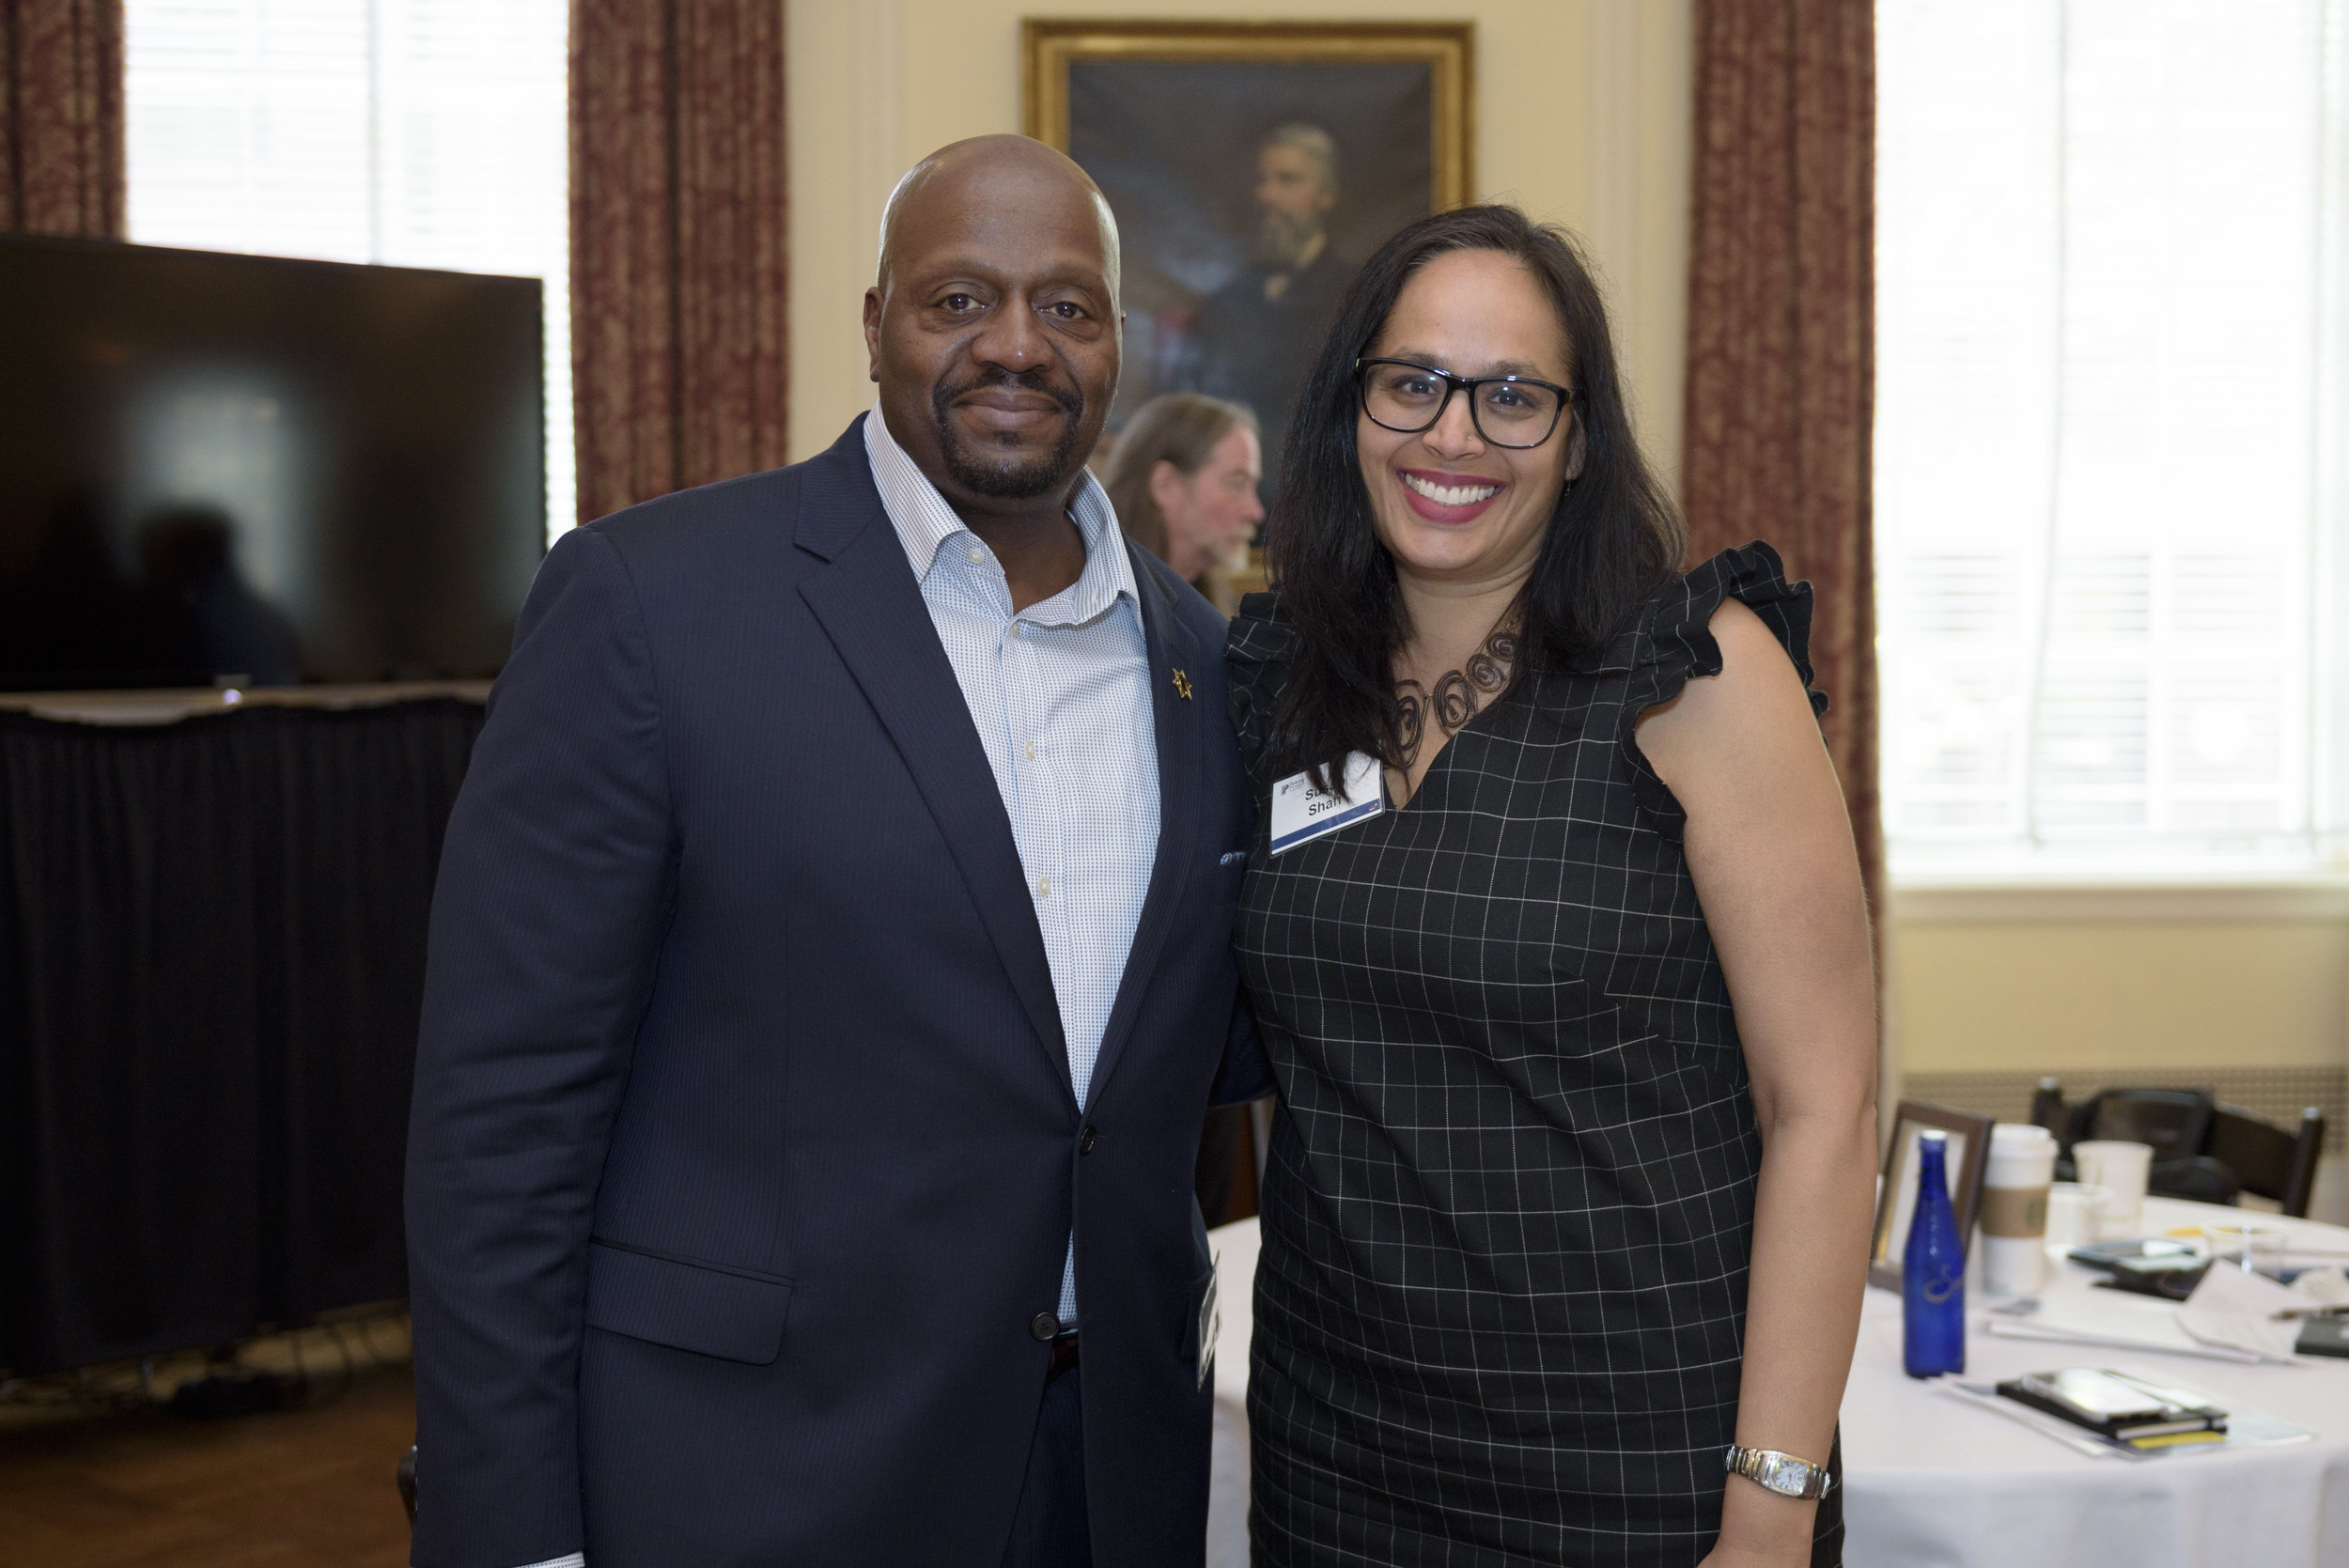 Sheriff Jerry Clayton of Washtenaw County, Michigan, and Susan Shah, managing director of racial justice at Trinity Church Wall Street.